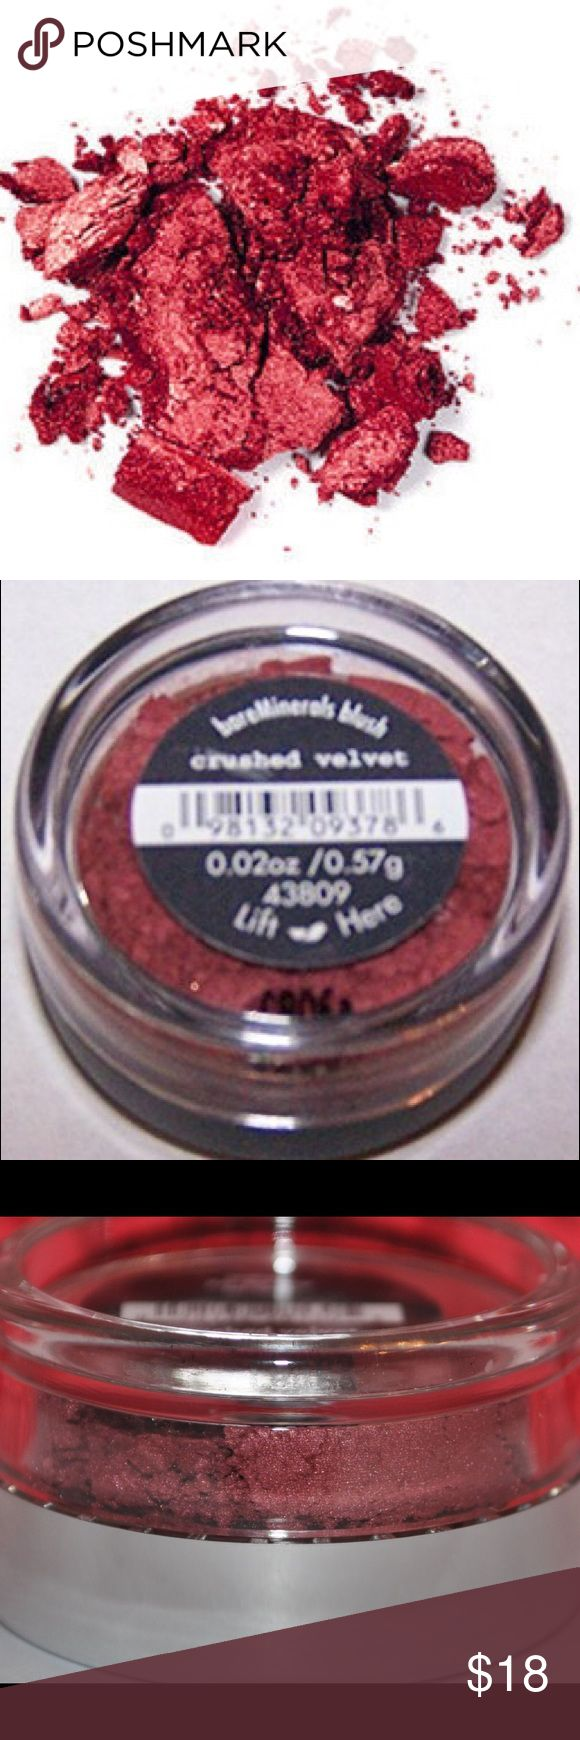 "Bare Minerals Crushed Velvet Blush Dark Red Wine Brand new, SEALED bare minerals blush. Shade ""crushed velvet"", a dark wine red shade. Small sized blush, and like all bare minerals products you can wear it also as an eye Shadow. All natural ingredients. EXTREMELY pigmented. Suitable for all skin tones. Perfect for medium to dark skin tones. If you're light or fair skin tone, only the tiniest amount is needed to achieve this look. Makeup Blush"